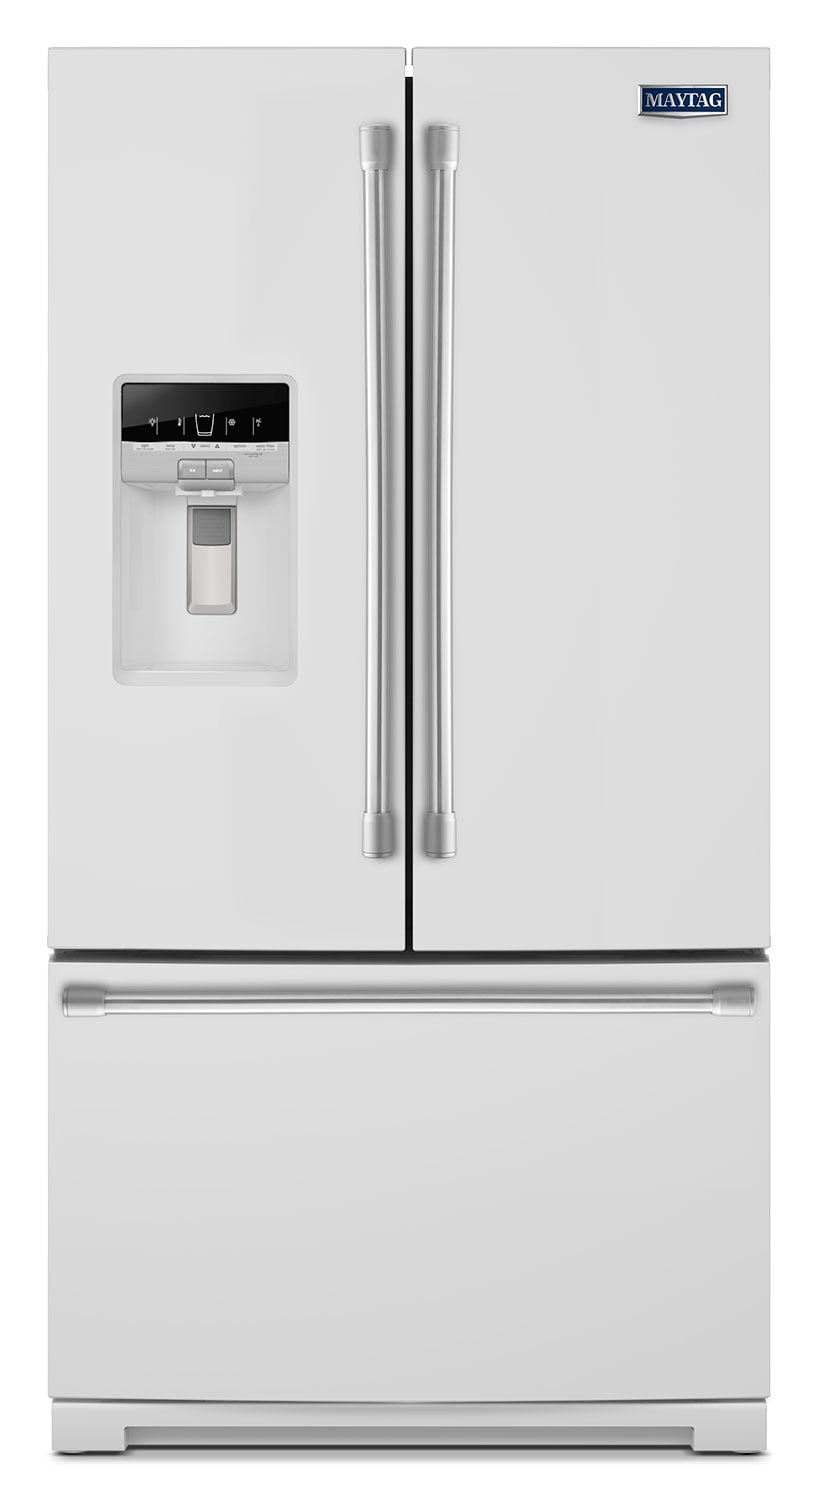 Refrigerators and Freezers - Maytag White French Door Refrigerator (26.8 Cu. Ft.) - MFT2776DEH